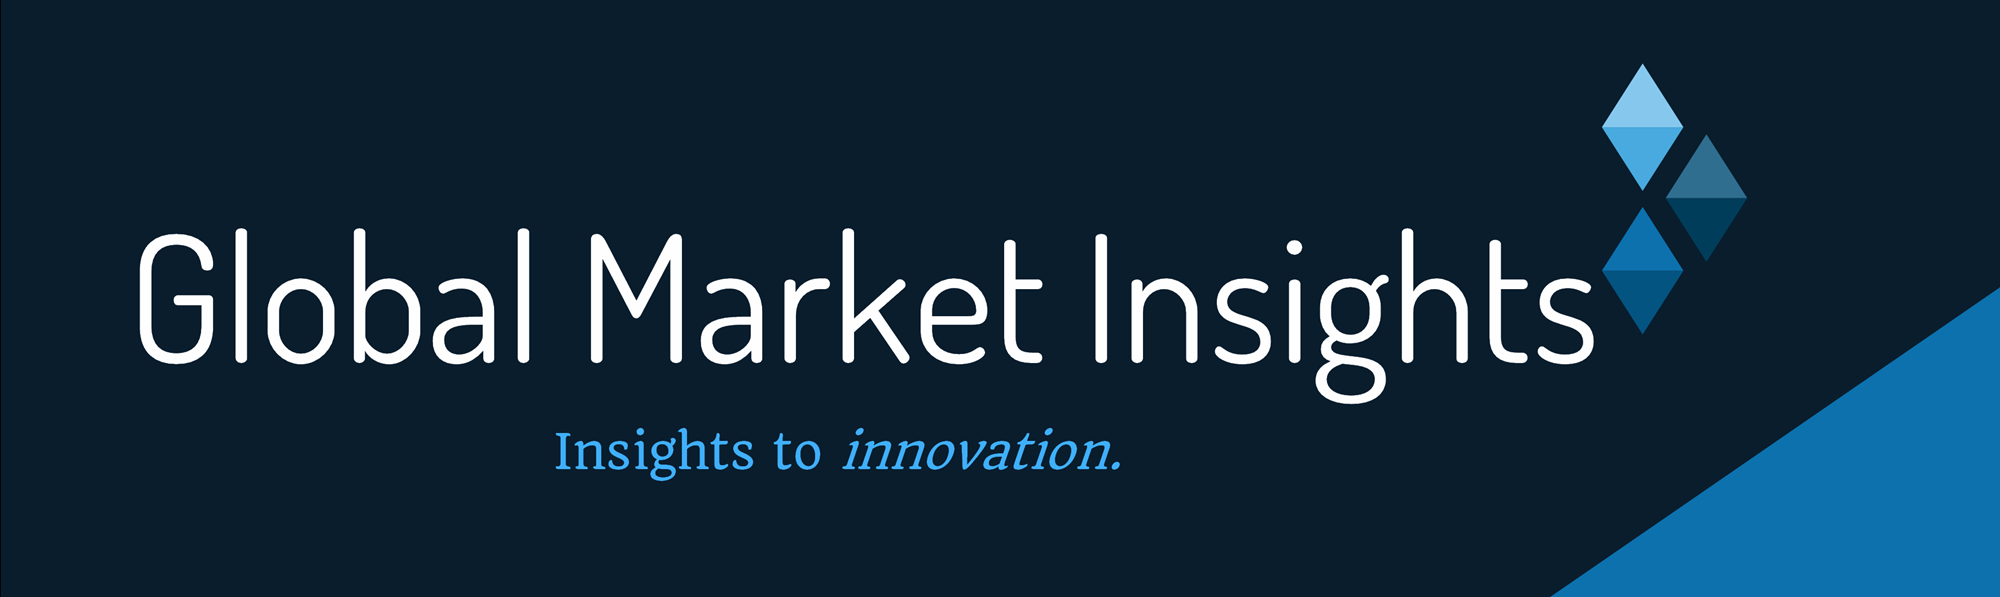 Global Market Insights, Inc